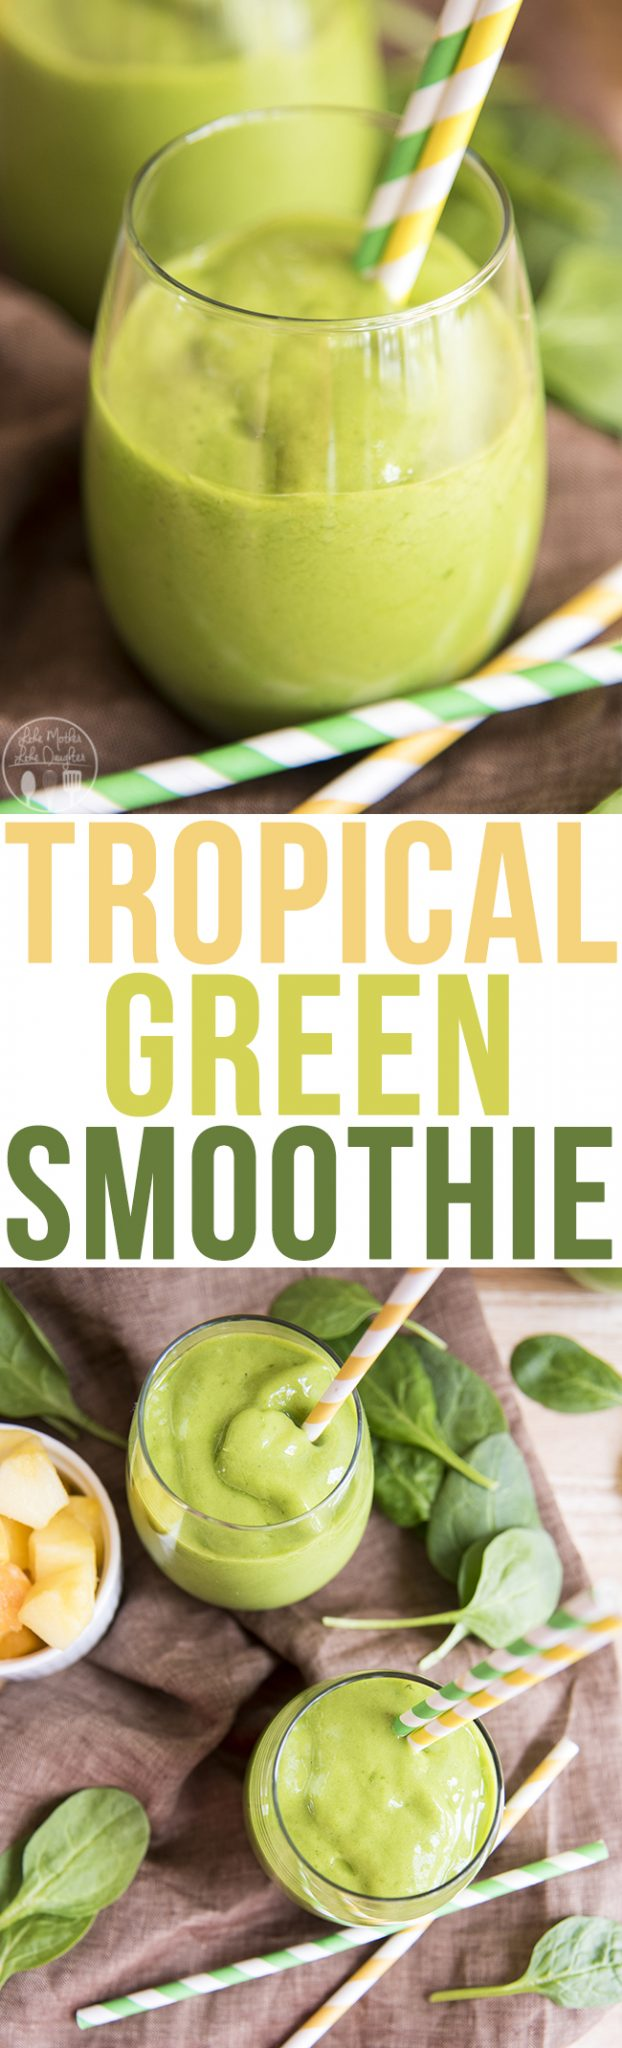 Tropical Green Smoothie - This tropical green smoothie is packed full of mango, pineapple, banana, vanilla yogurt, orange juice and of course spinach for a beautiful green smoothie that is also delicious! Great for a light breakfast, lunch or snack!